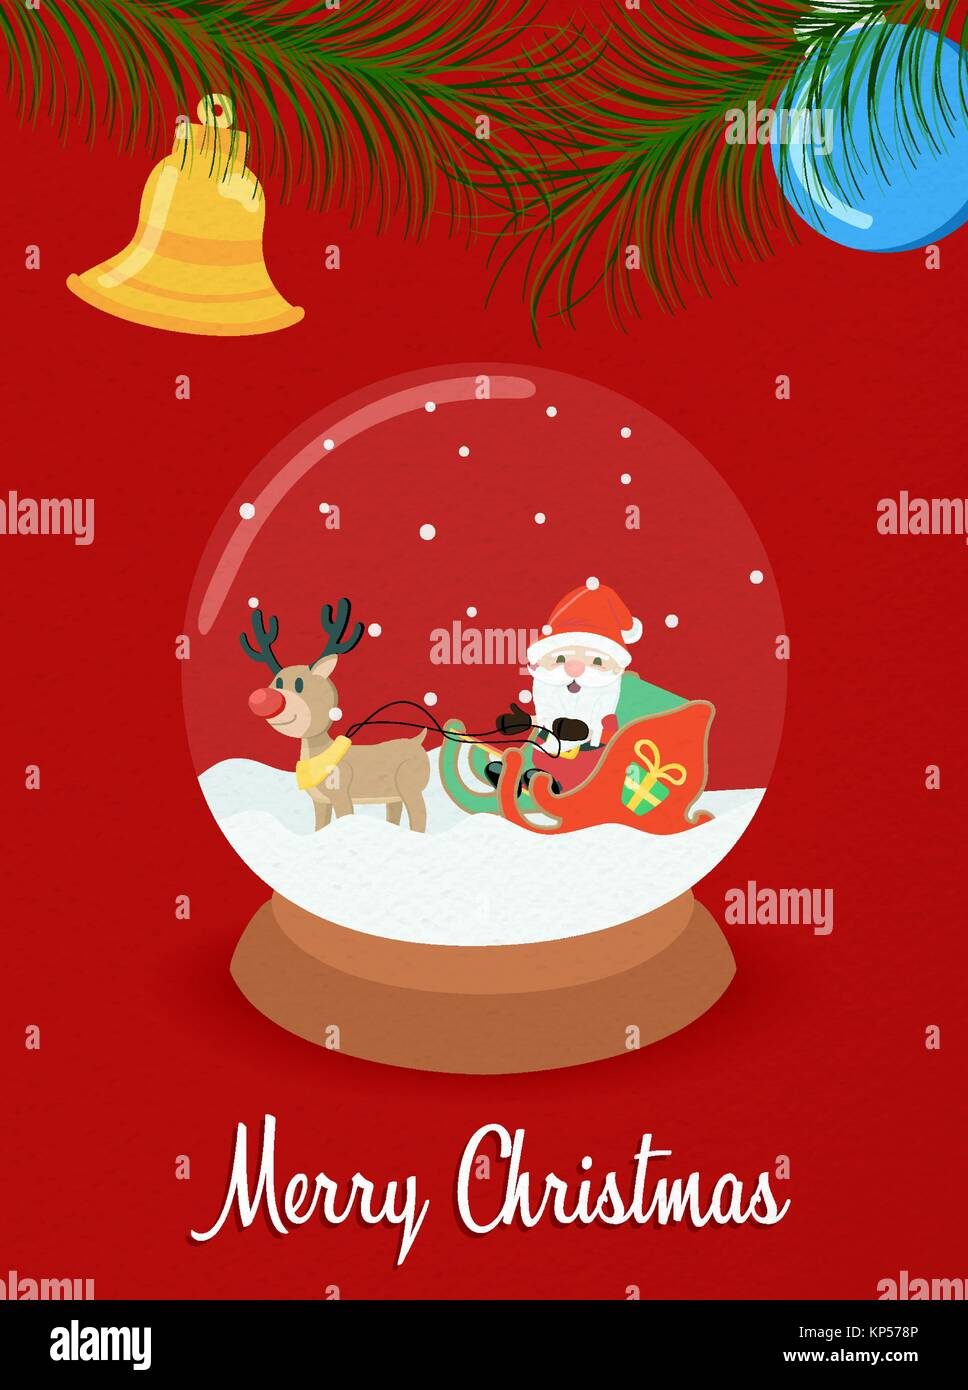 Merry Christmas greeting card snow globe illustration for holiday ...